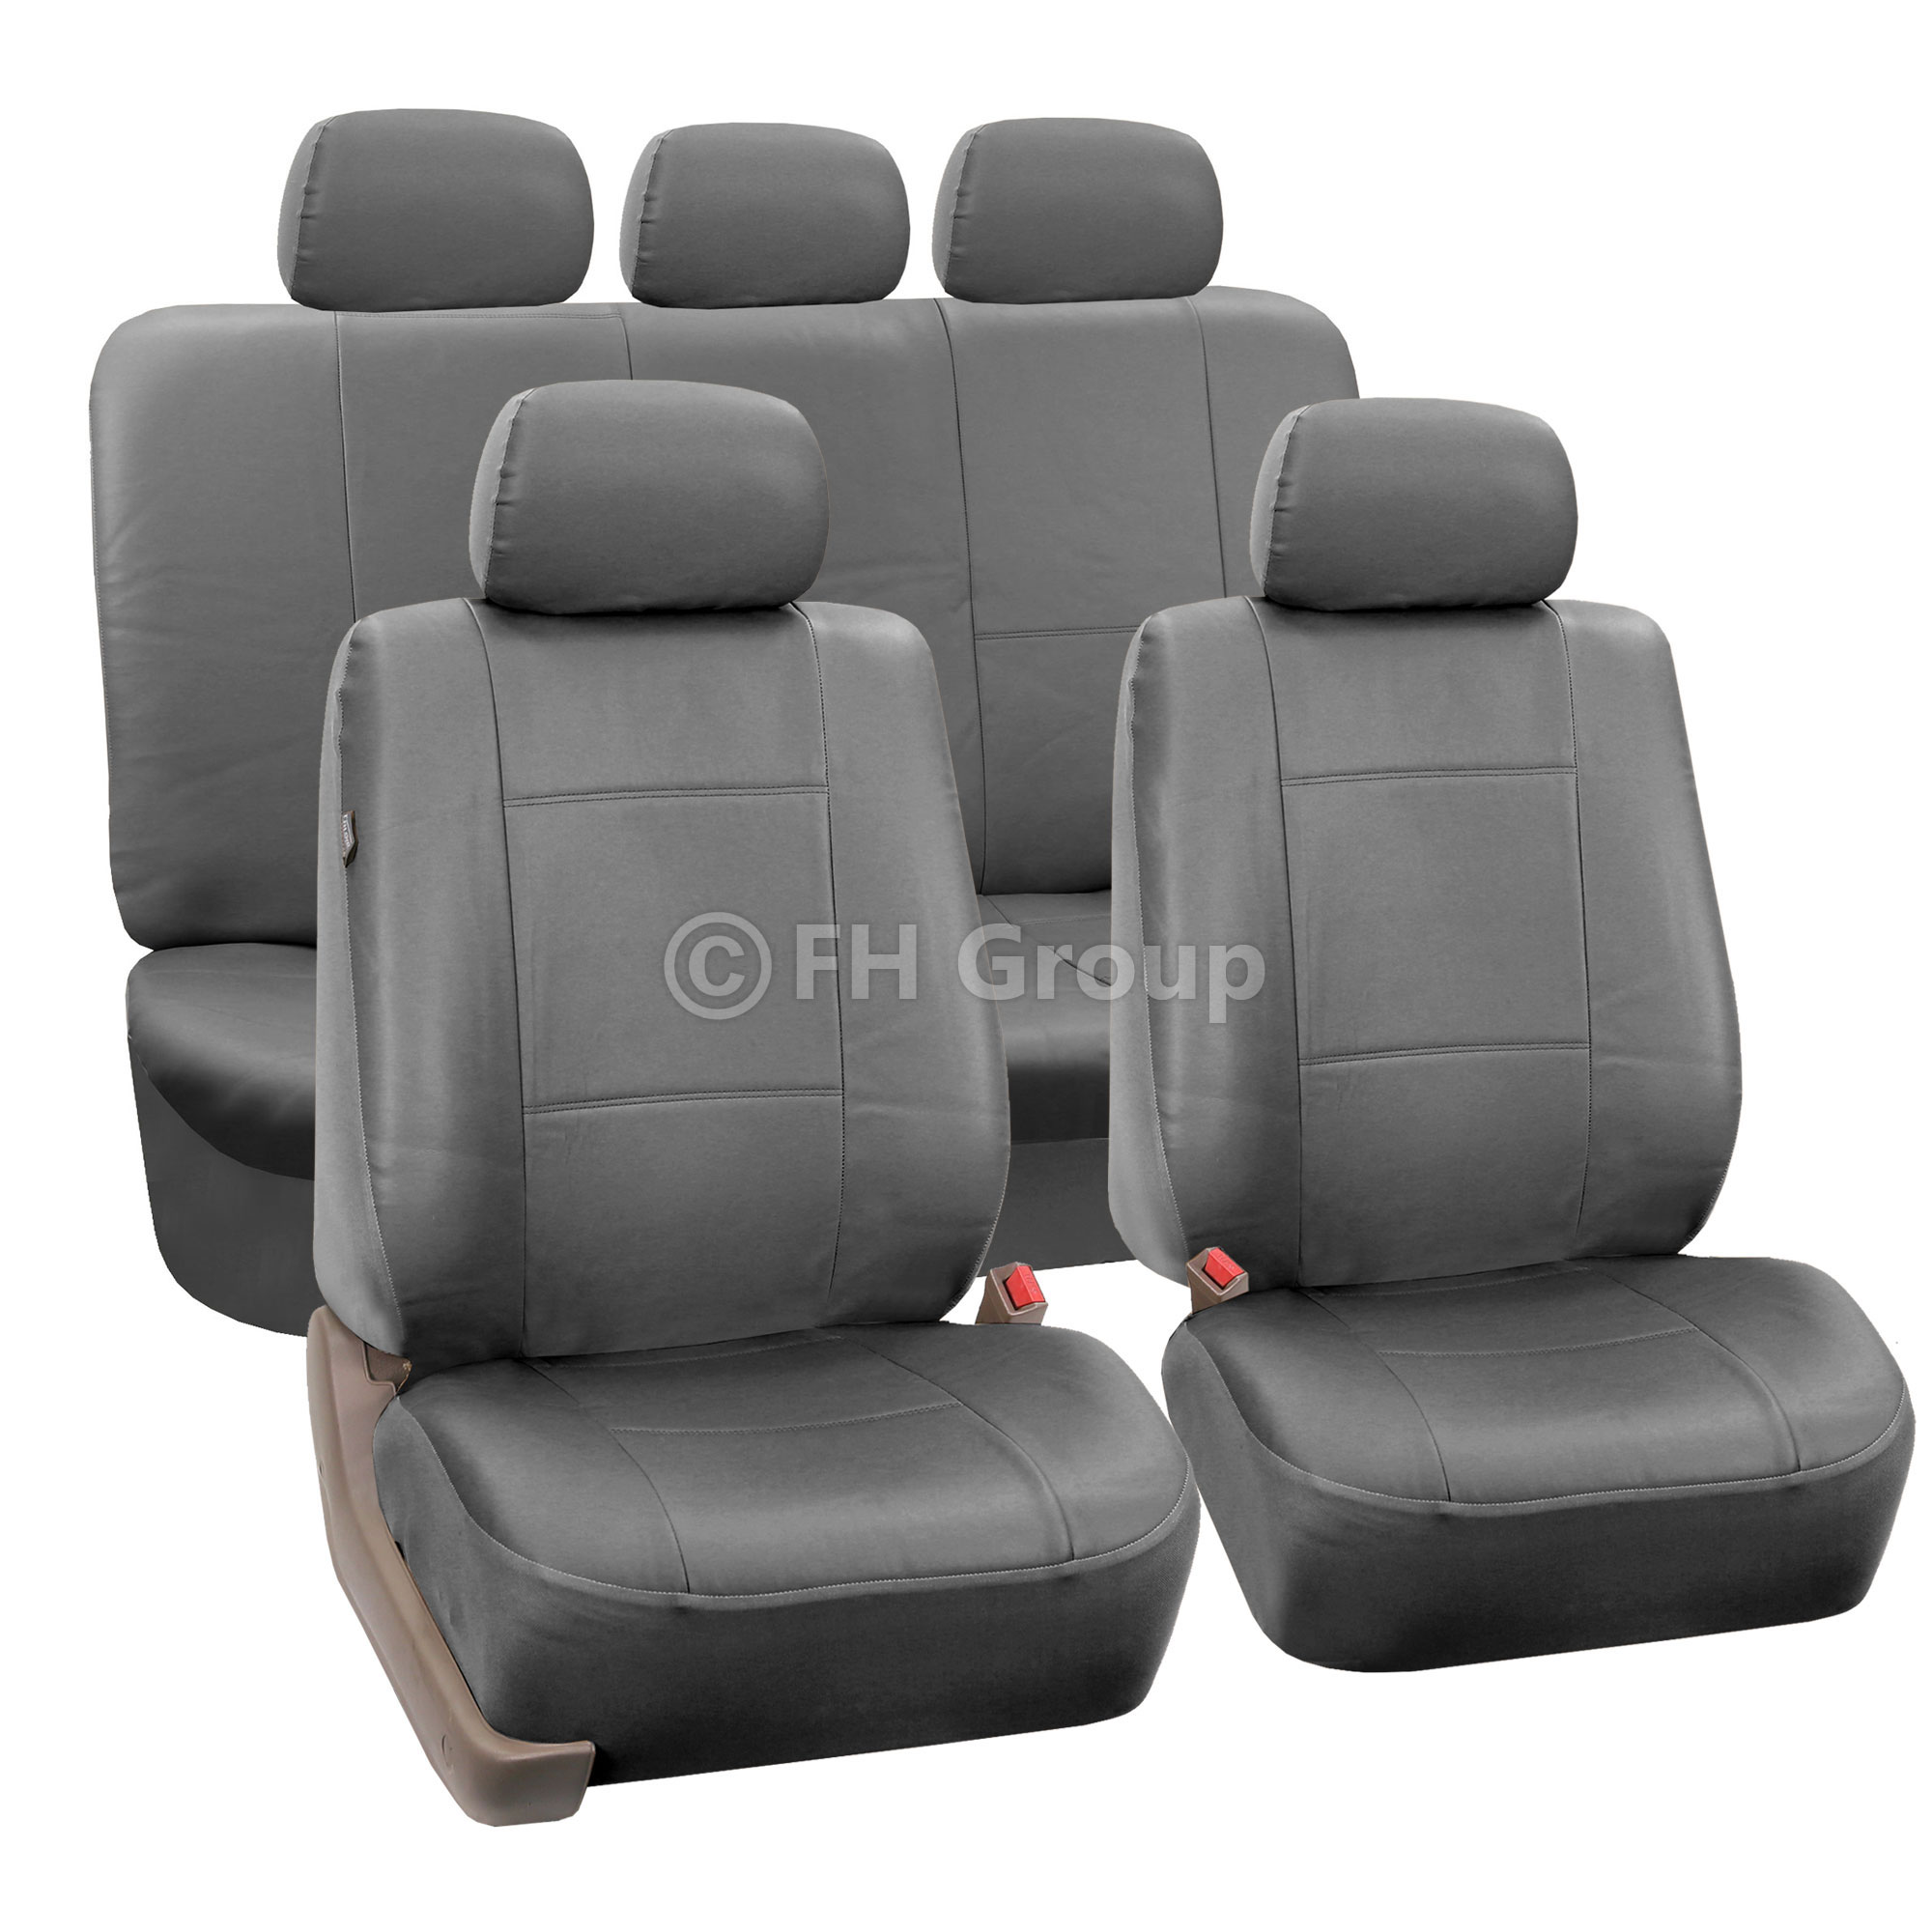 Toyota Of Gainesville: 3-Row PU Leather Seat Covers For SUV Air Bag Safe & Split